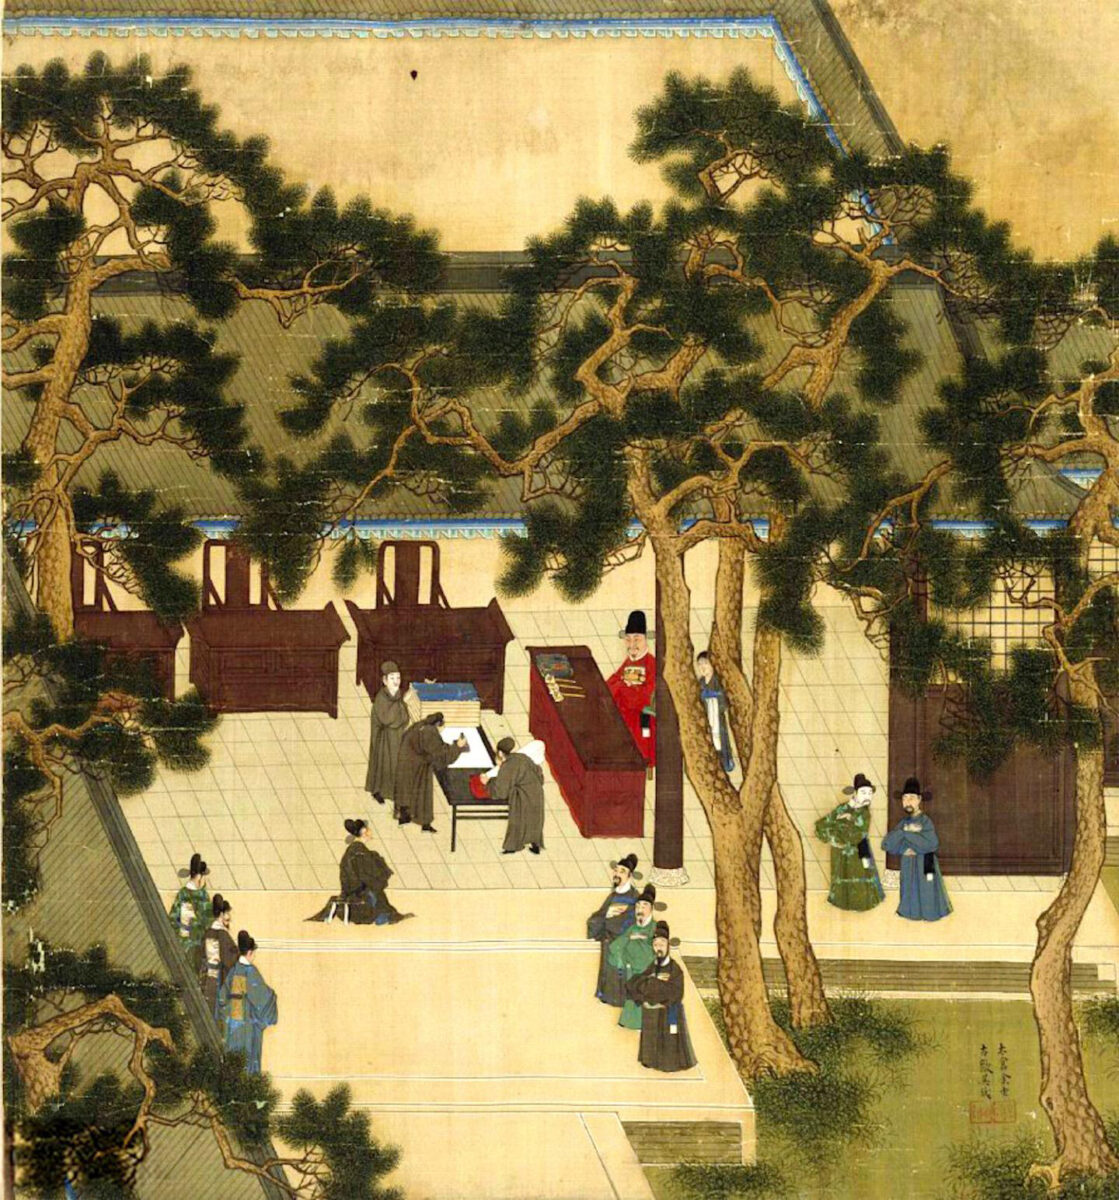 Xu Xianqin, Vice-Minister of Rites, overseeing the imperial civil service exam circa 1587, during the Ming Dynasty. Credit : 余壬、吳鉞描繪,徐顯卿題詠, Public domain, via Wikimedia Commons